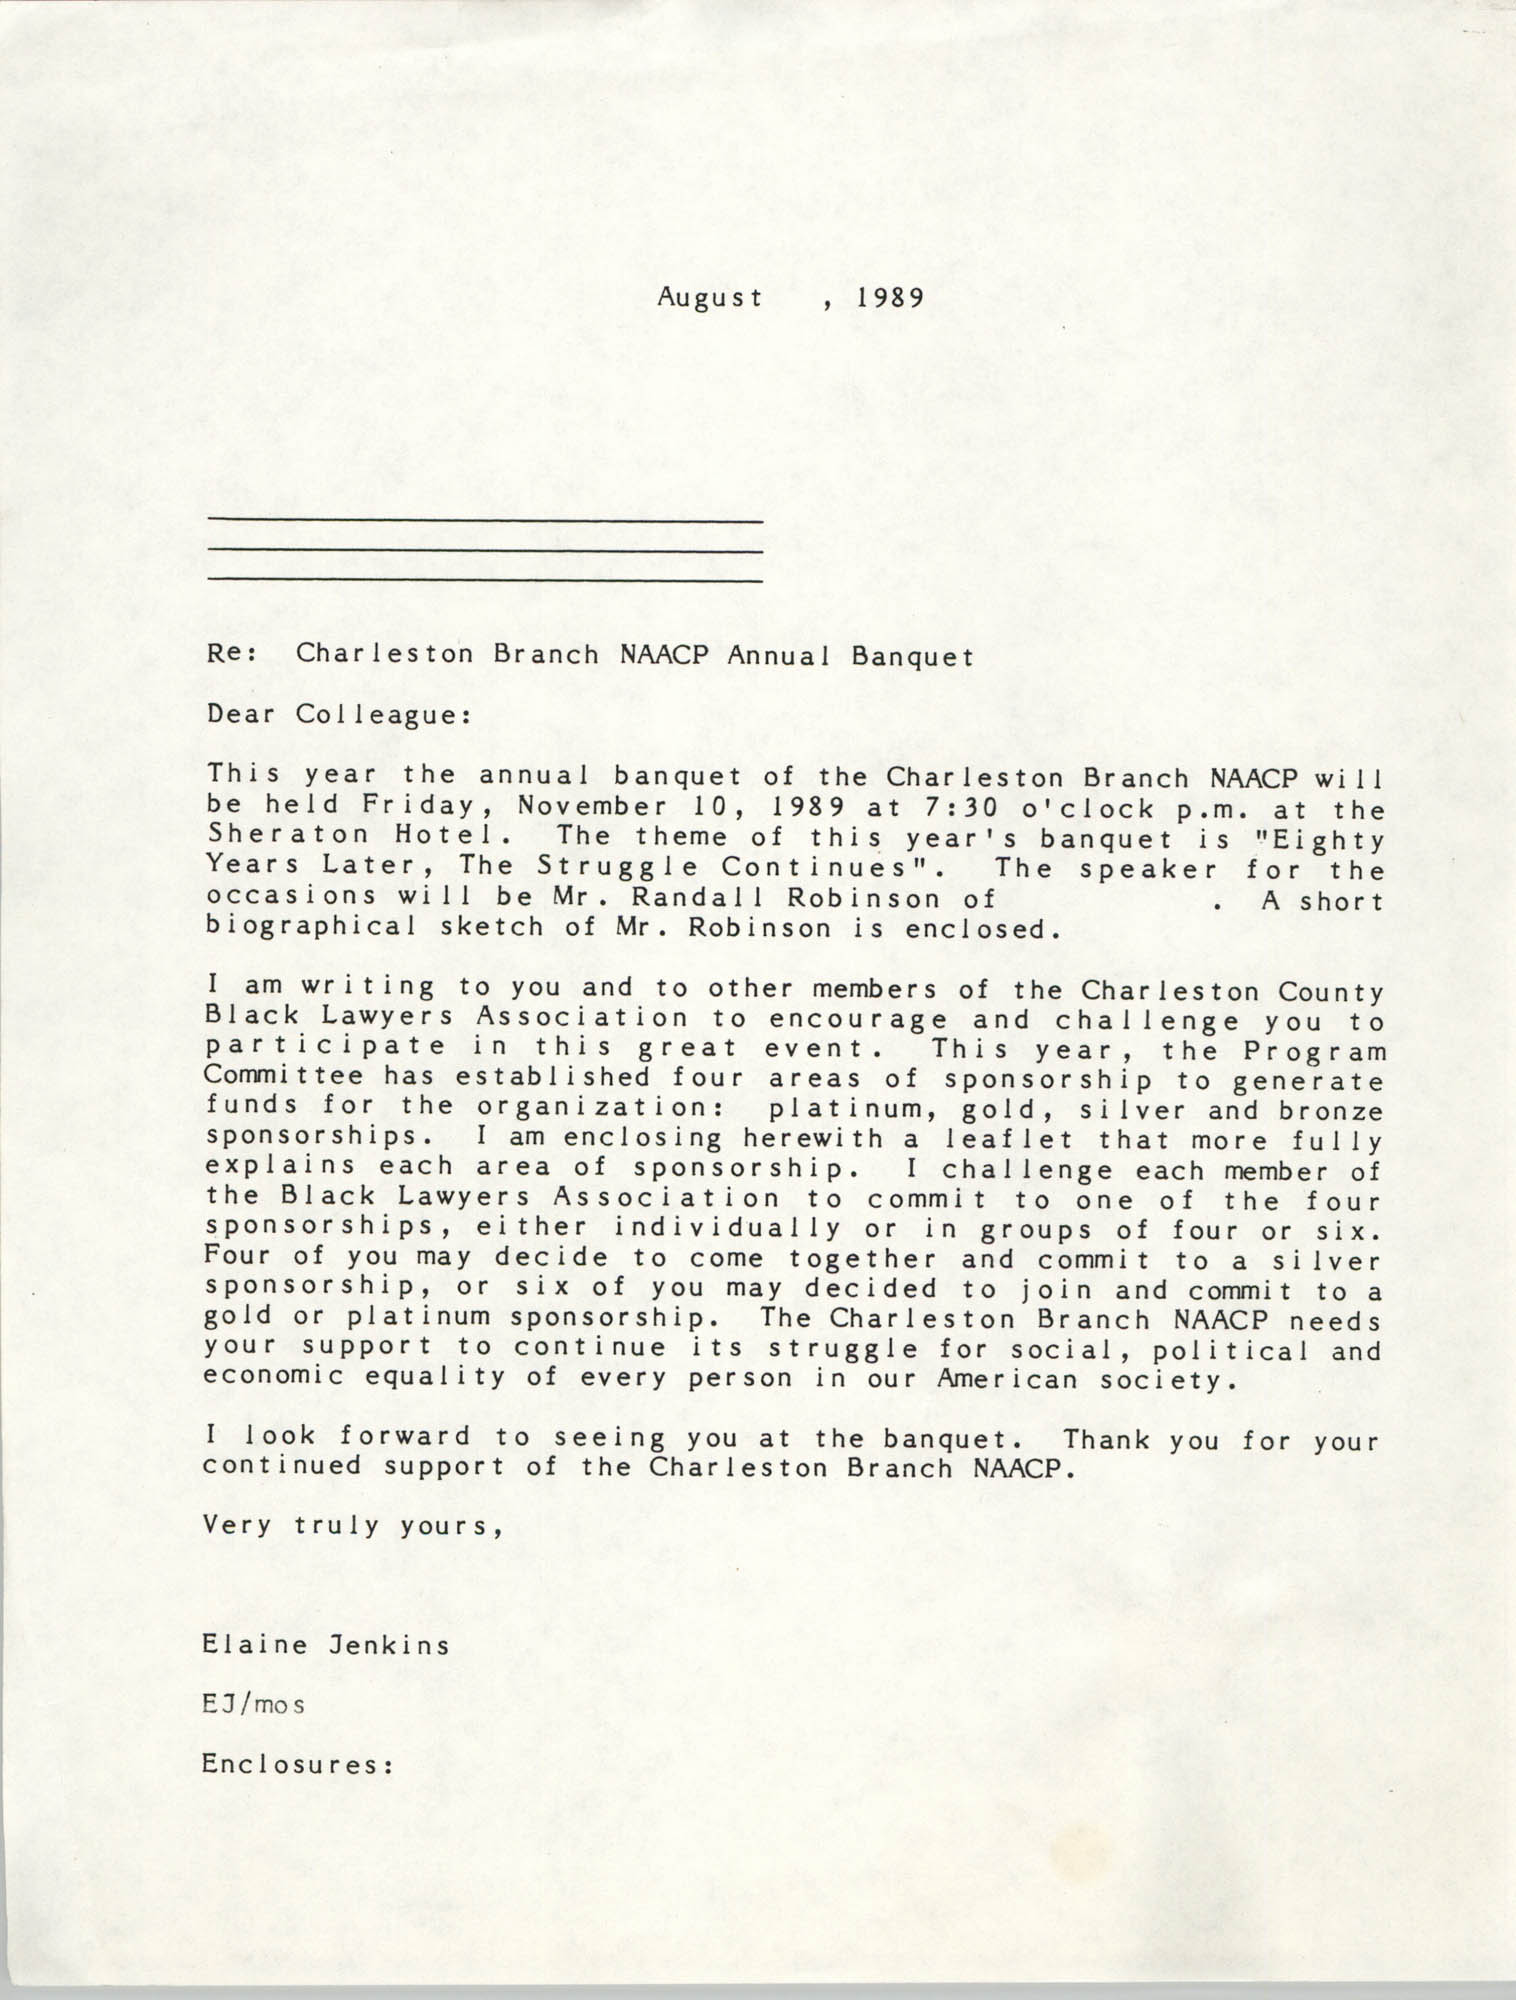 Letter from Elaine Jenkins to a Colleague, August 1989